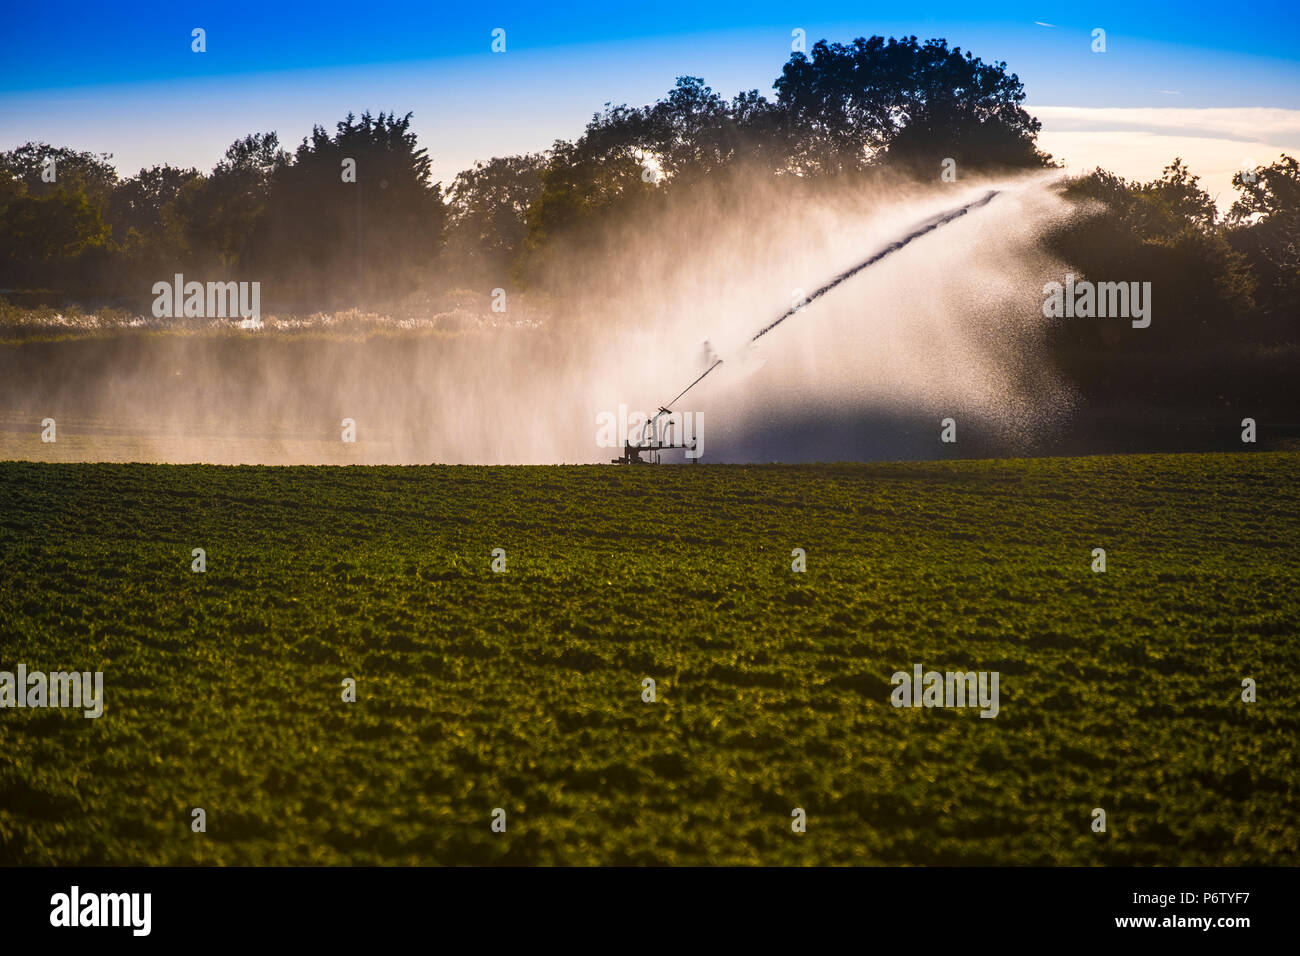 Watering a potato field during a very dry summer. Norfolk, UK. Backlit by the evening sun. - Stock Image